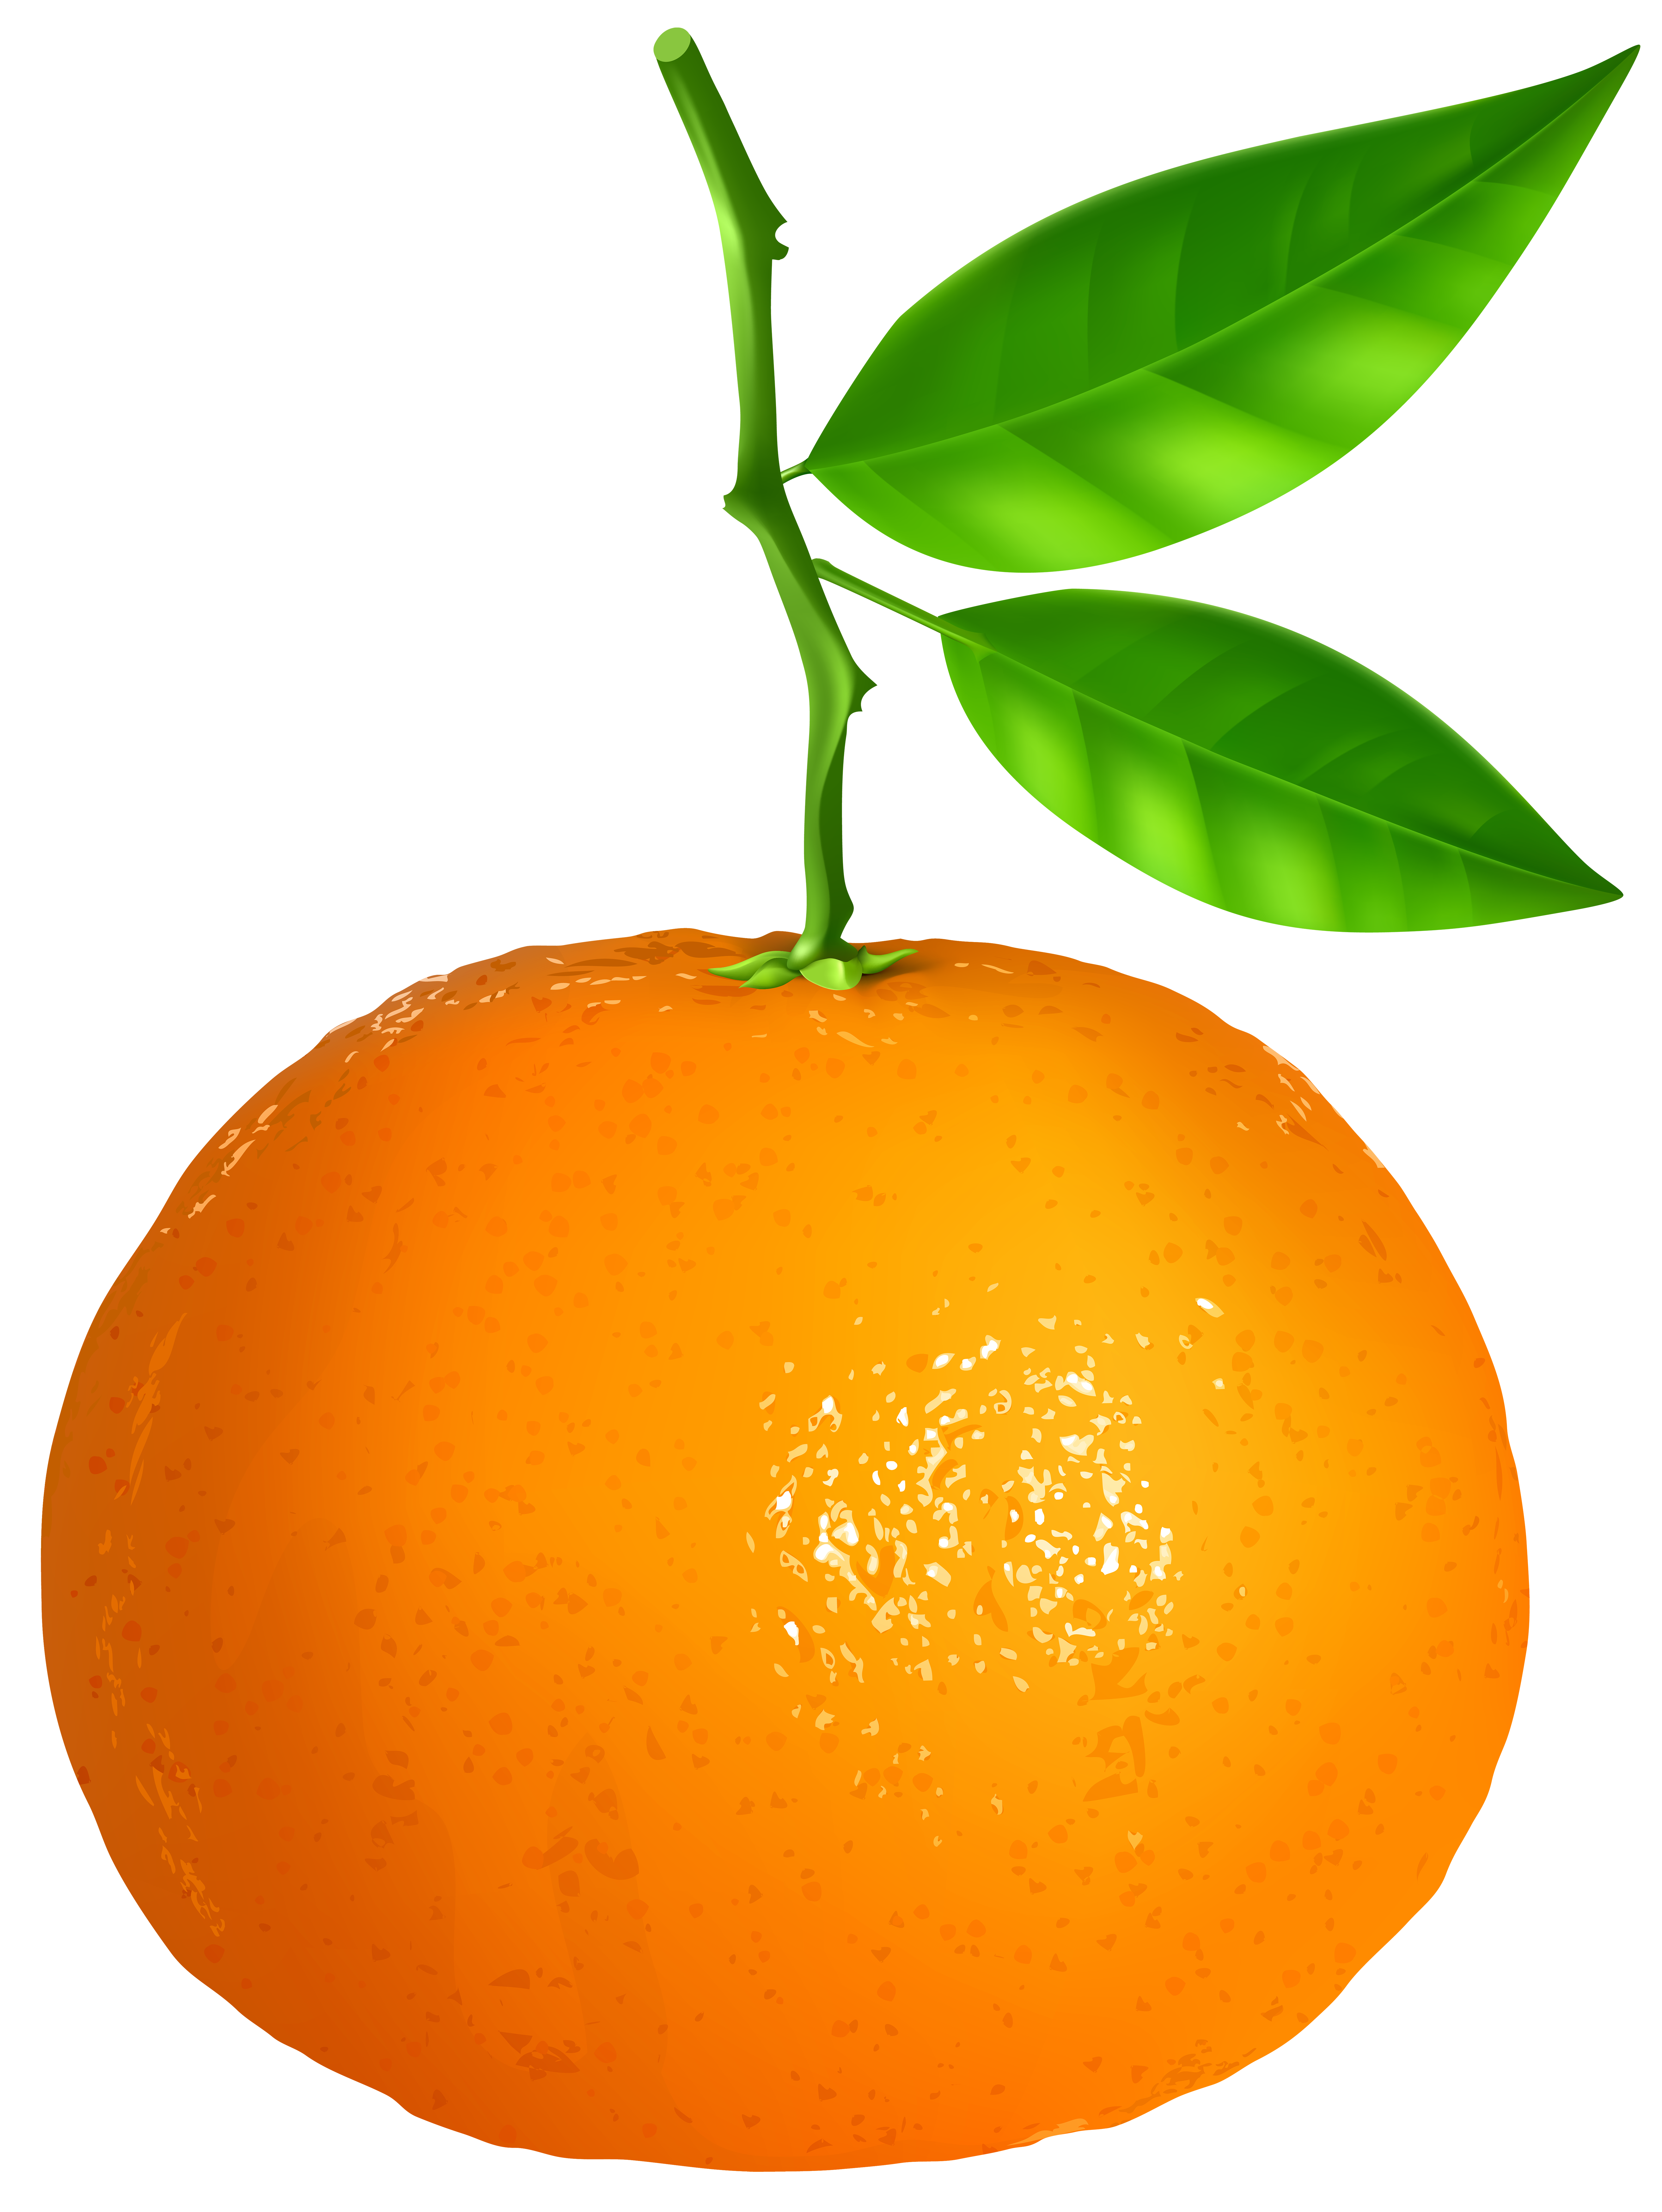 Clementine clipart graphic free Clementine clipart clipart images gallery for free download | MyReal ... graphic free